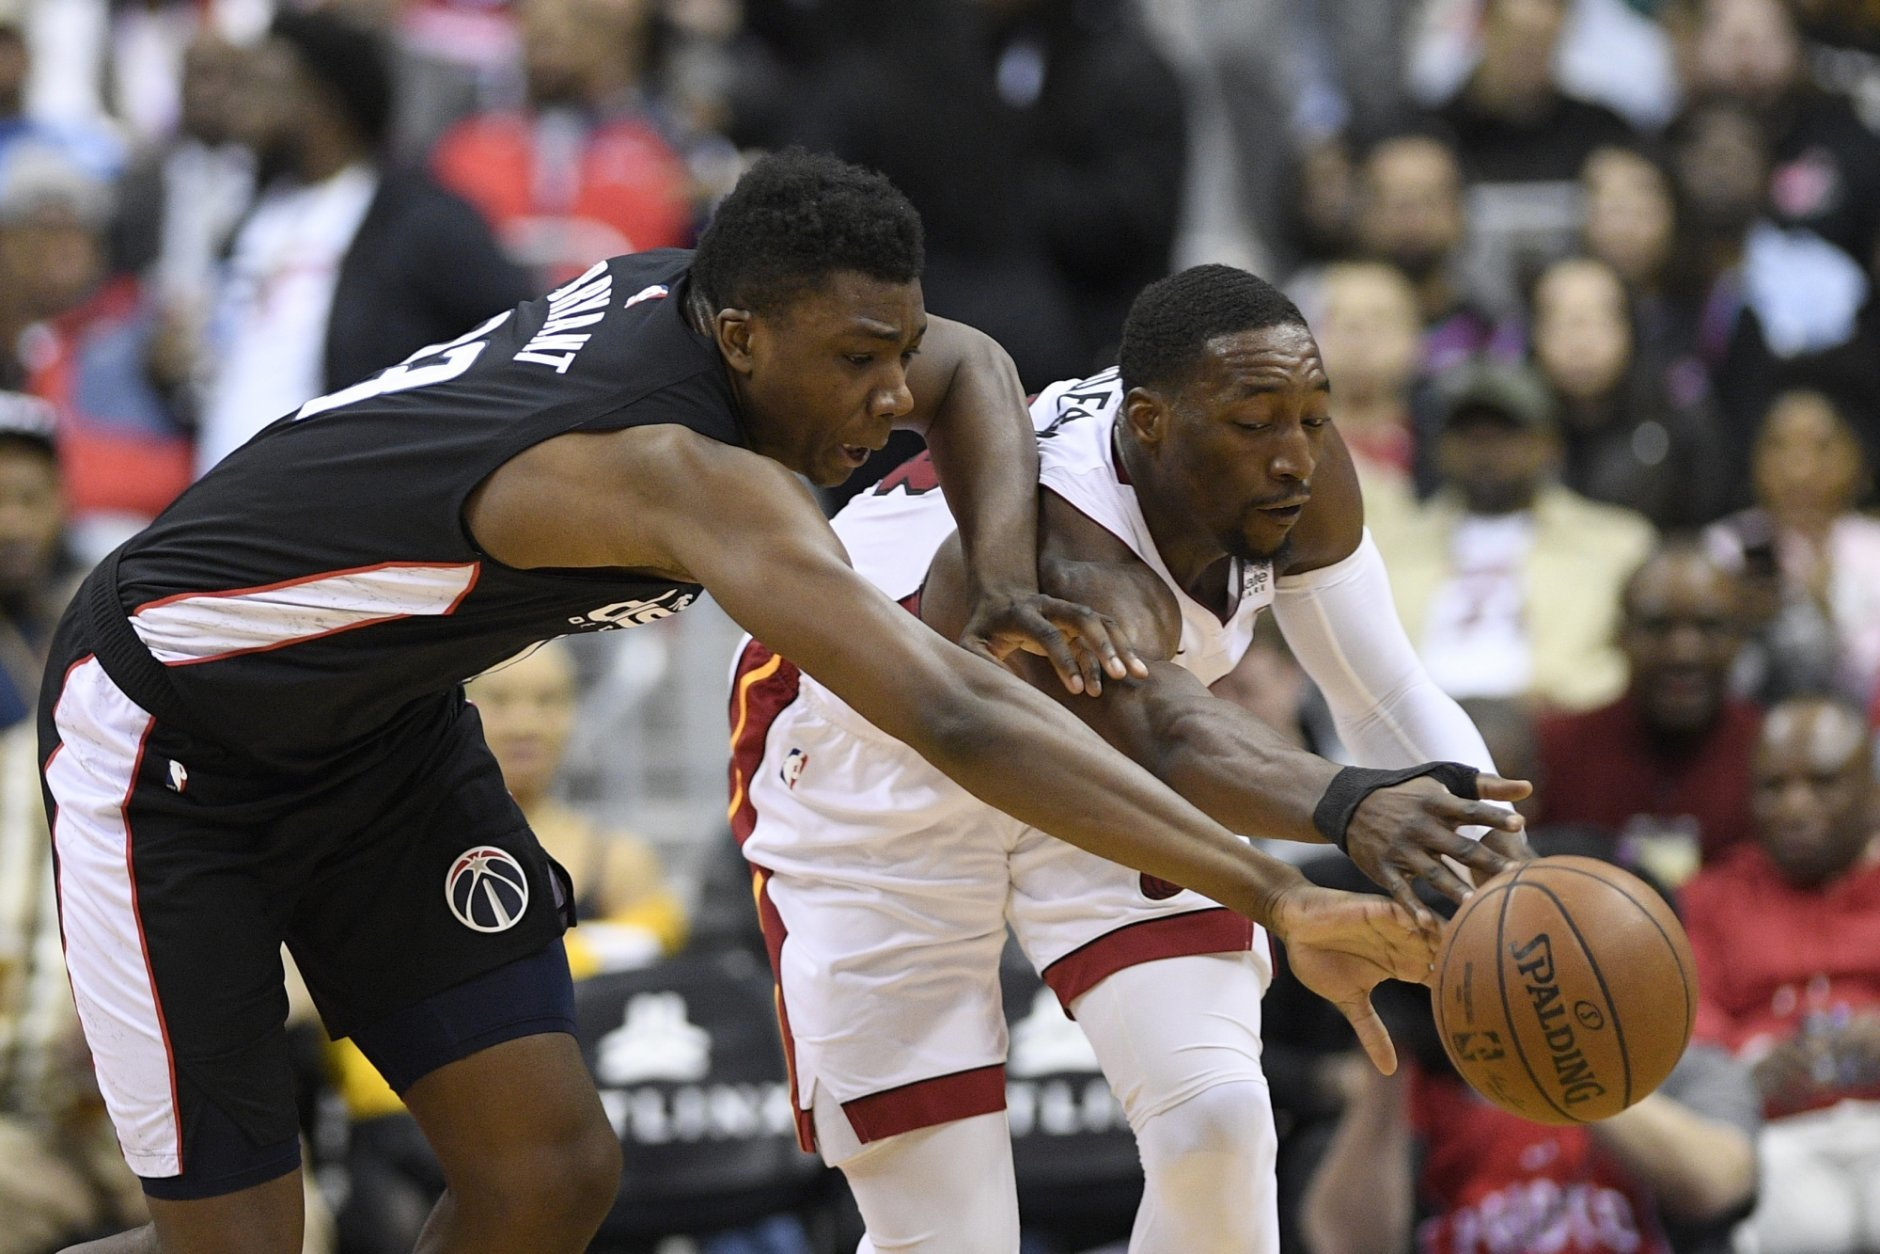 Washington Wizards center Thomas Bryant, left, battles for the ball against Miami Heat center Bam Adebayo, right, during the first half of an NBA basketball game, Saturday, March 23, 2019, in Washington. (AP Photo/Nick Wass)